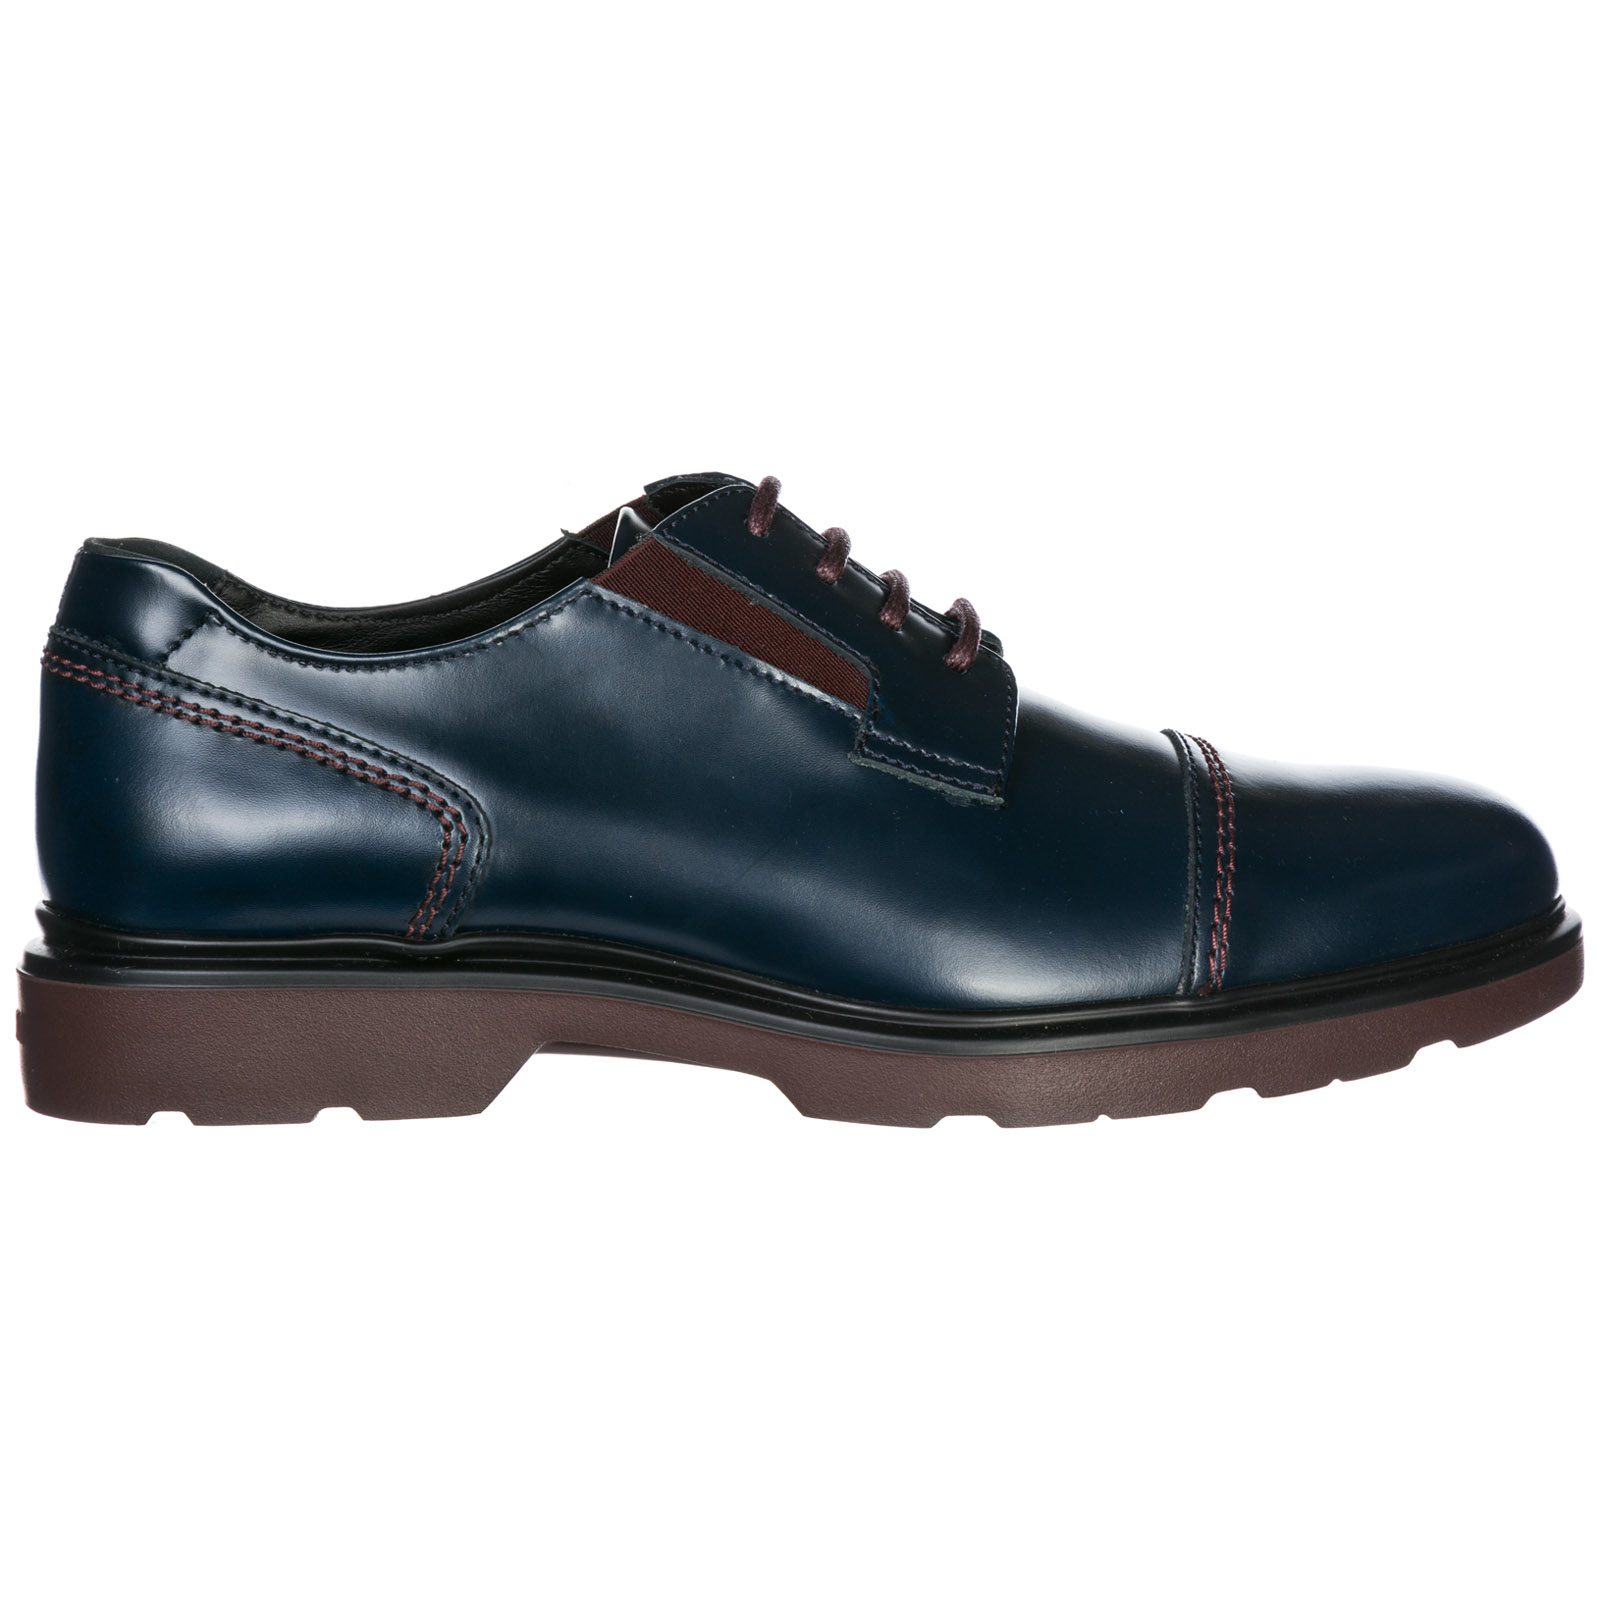 Men's classic leather lace up laced formal shoes h304 derby